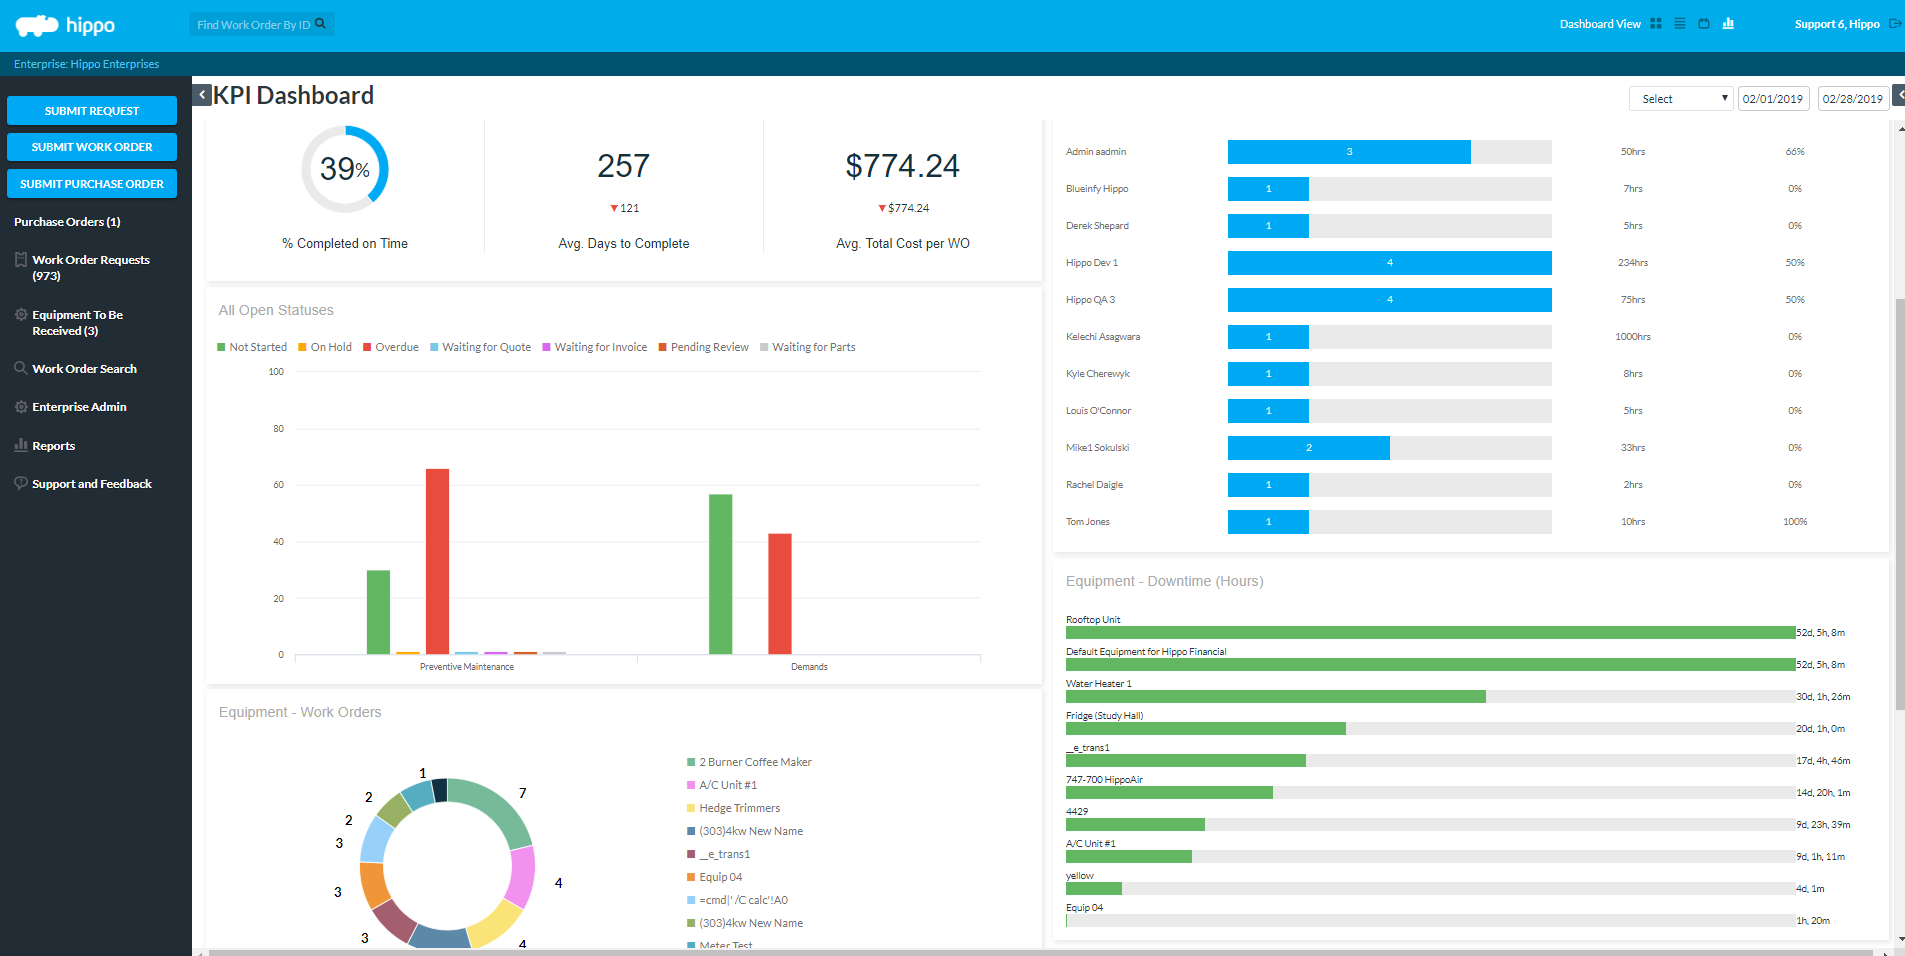 KPIs - easy to access, instant insights into key performance indicators